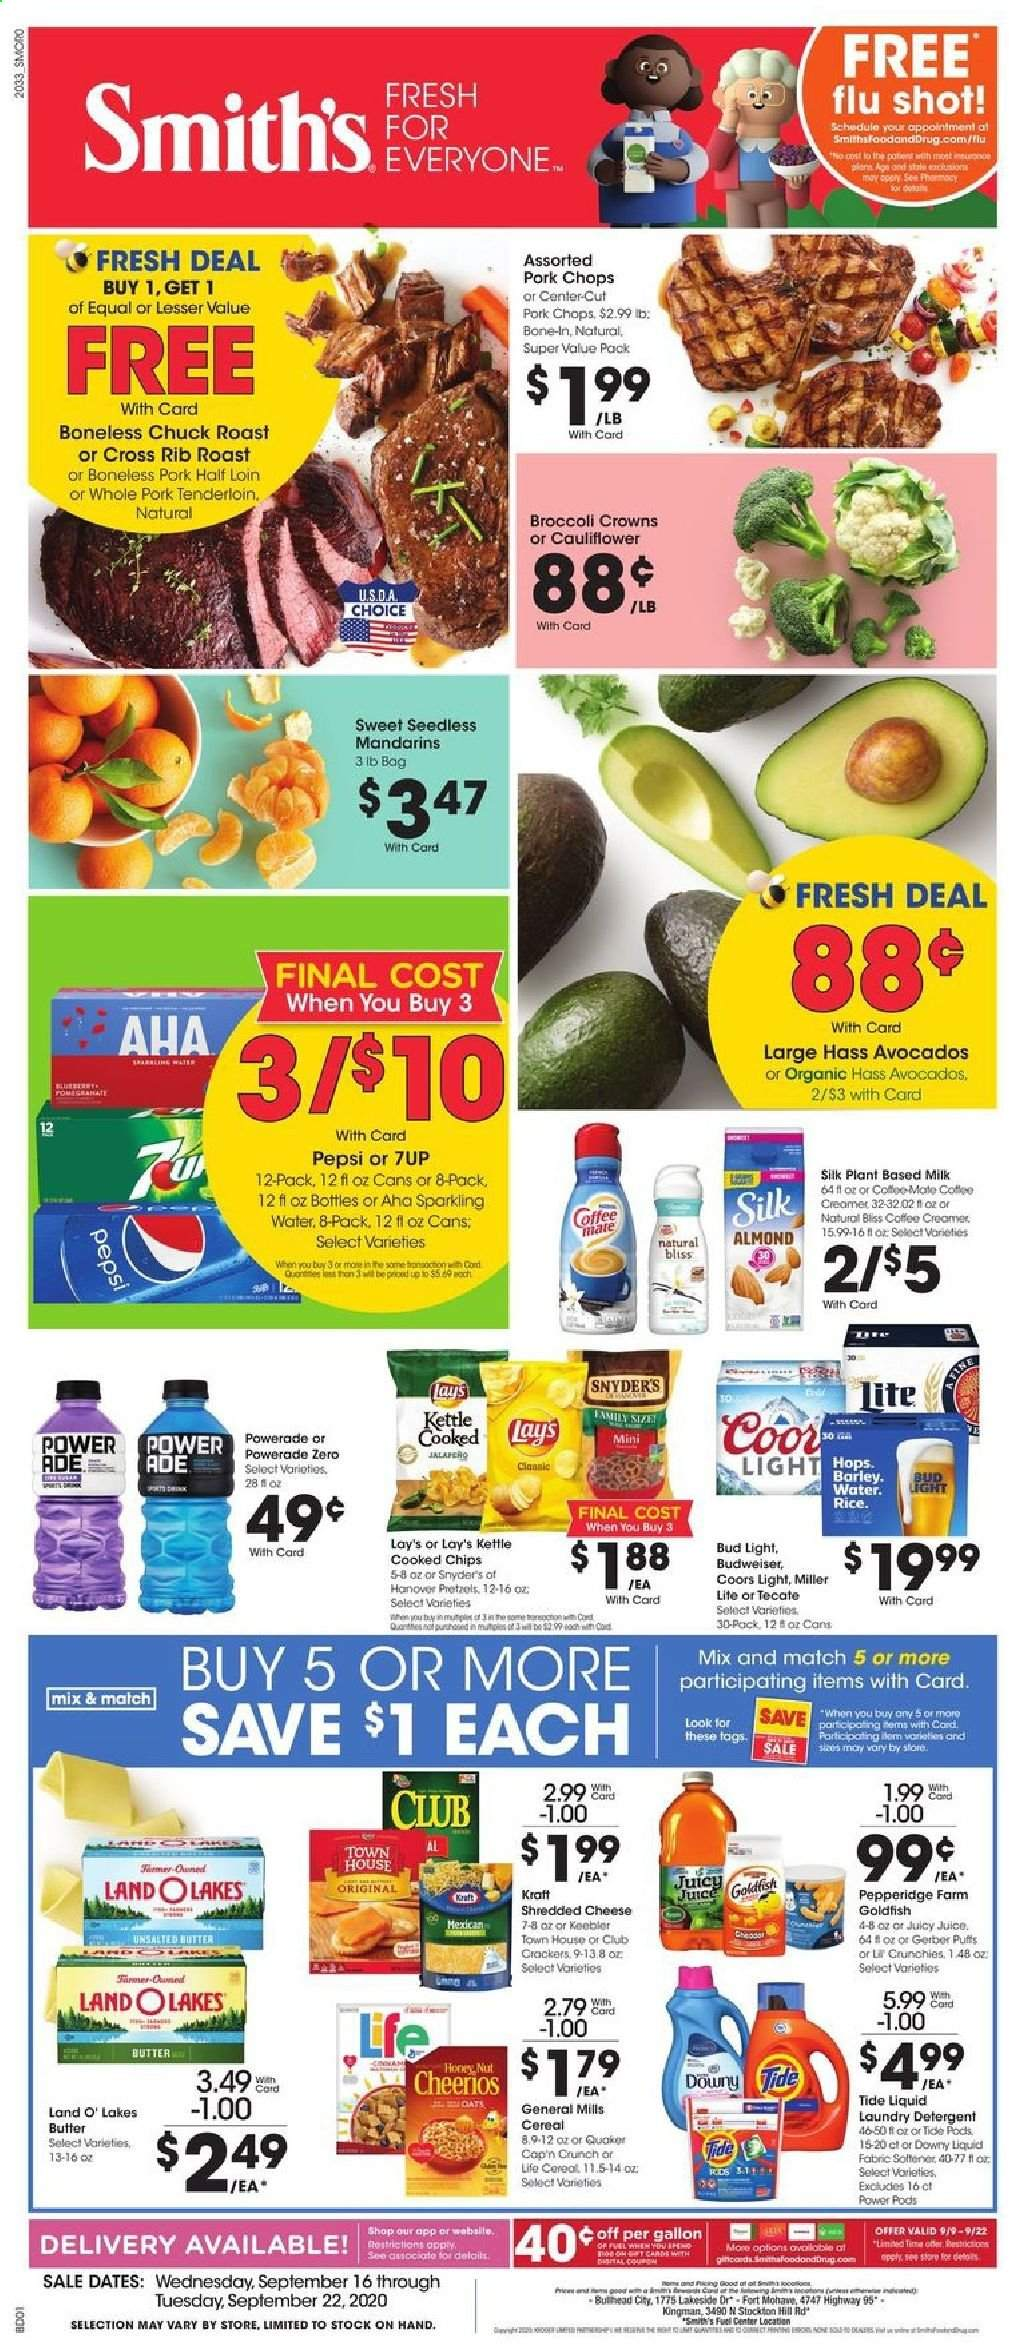 Smith's Flyer - 09.16.2020 - 09.22.2020 - Sales products - Budweiser, Bud Light, Coors, broccoli, cauliflower, avocado, pomegranate, pretzels, shredded cheese, cheese, milk, butter, creamer, cracker, crackers, chips, Lay's, oats, barley, cereals, Cheerios, rice, honey, Powerade, Pepsi, juice, sparkling water, water, coffee, pork chops, pork meat, pork tenderloin, detergent, Downy, Tide, laundry detergent, Cars, kettle, rib roast. Page 1.